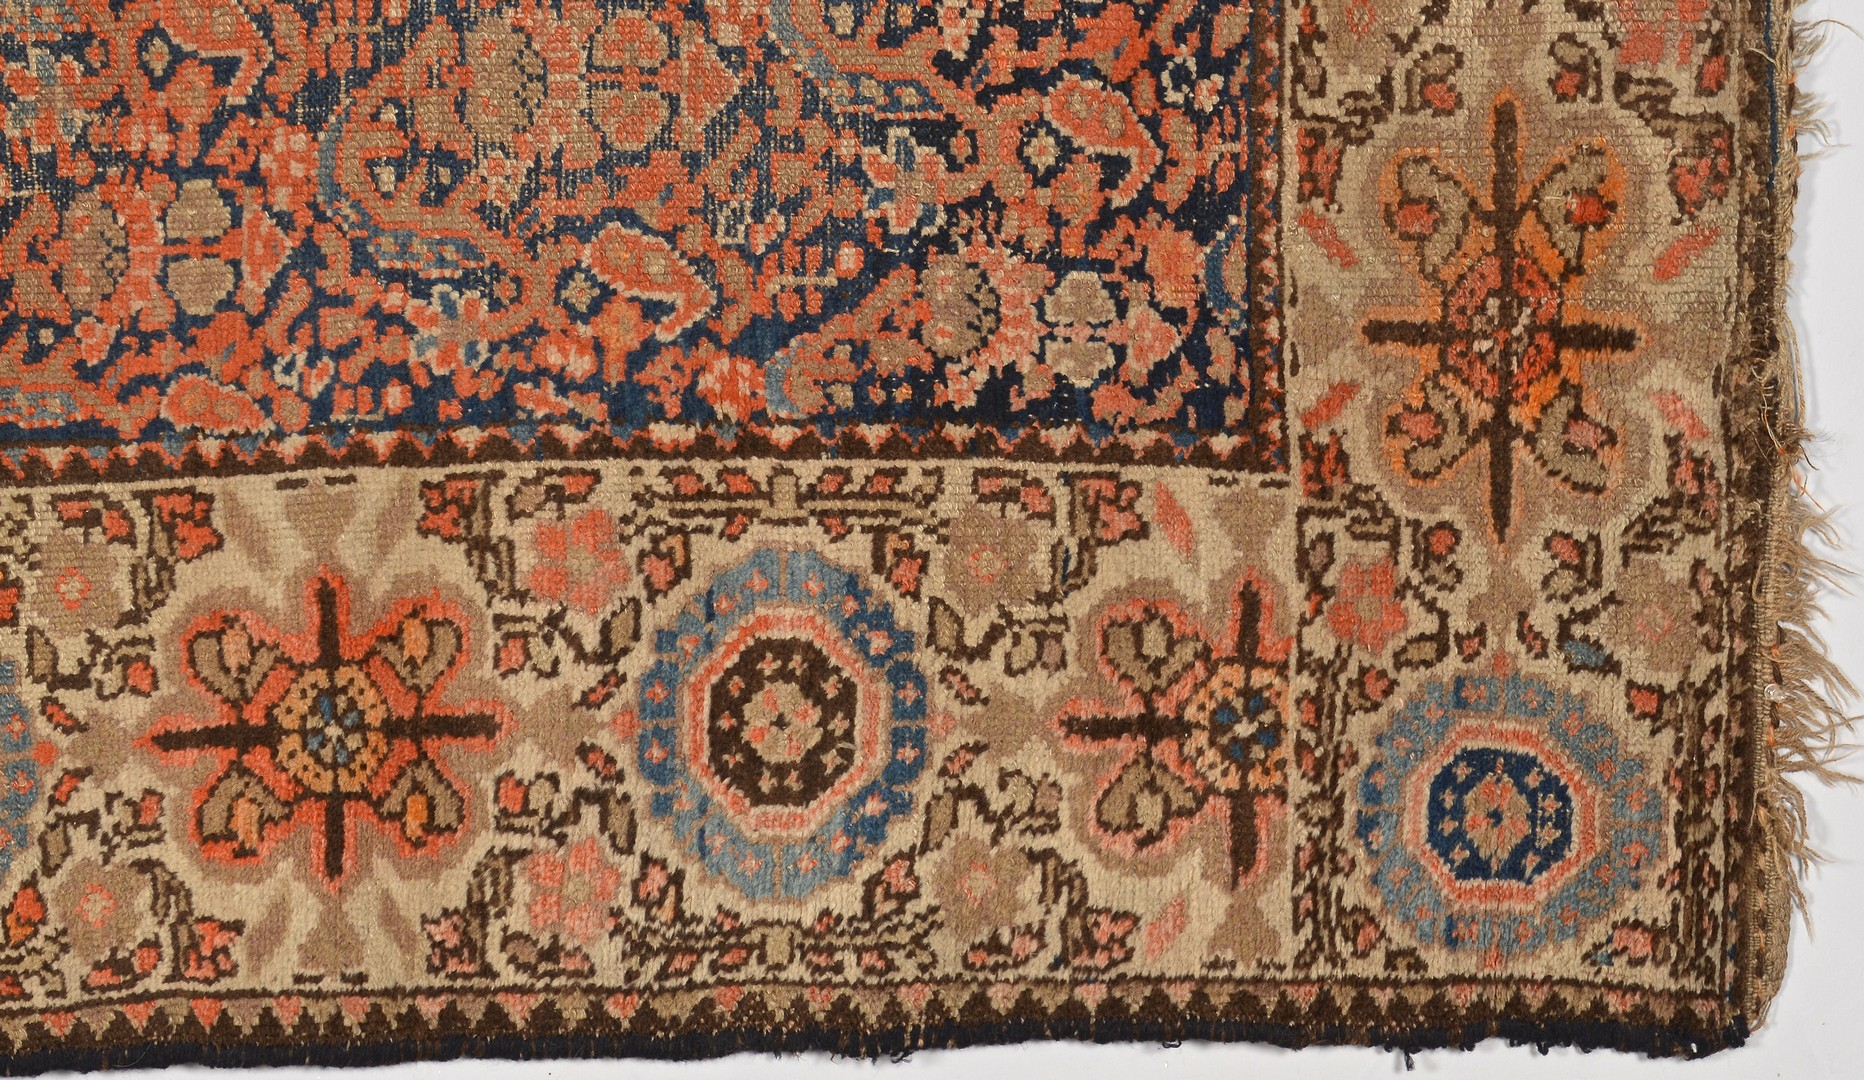 Lot 917: Kurdish area rug, early 20th century